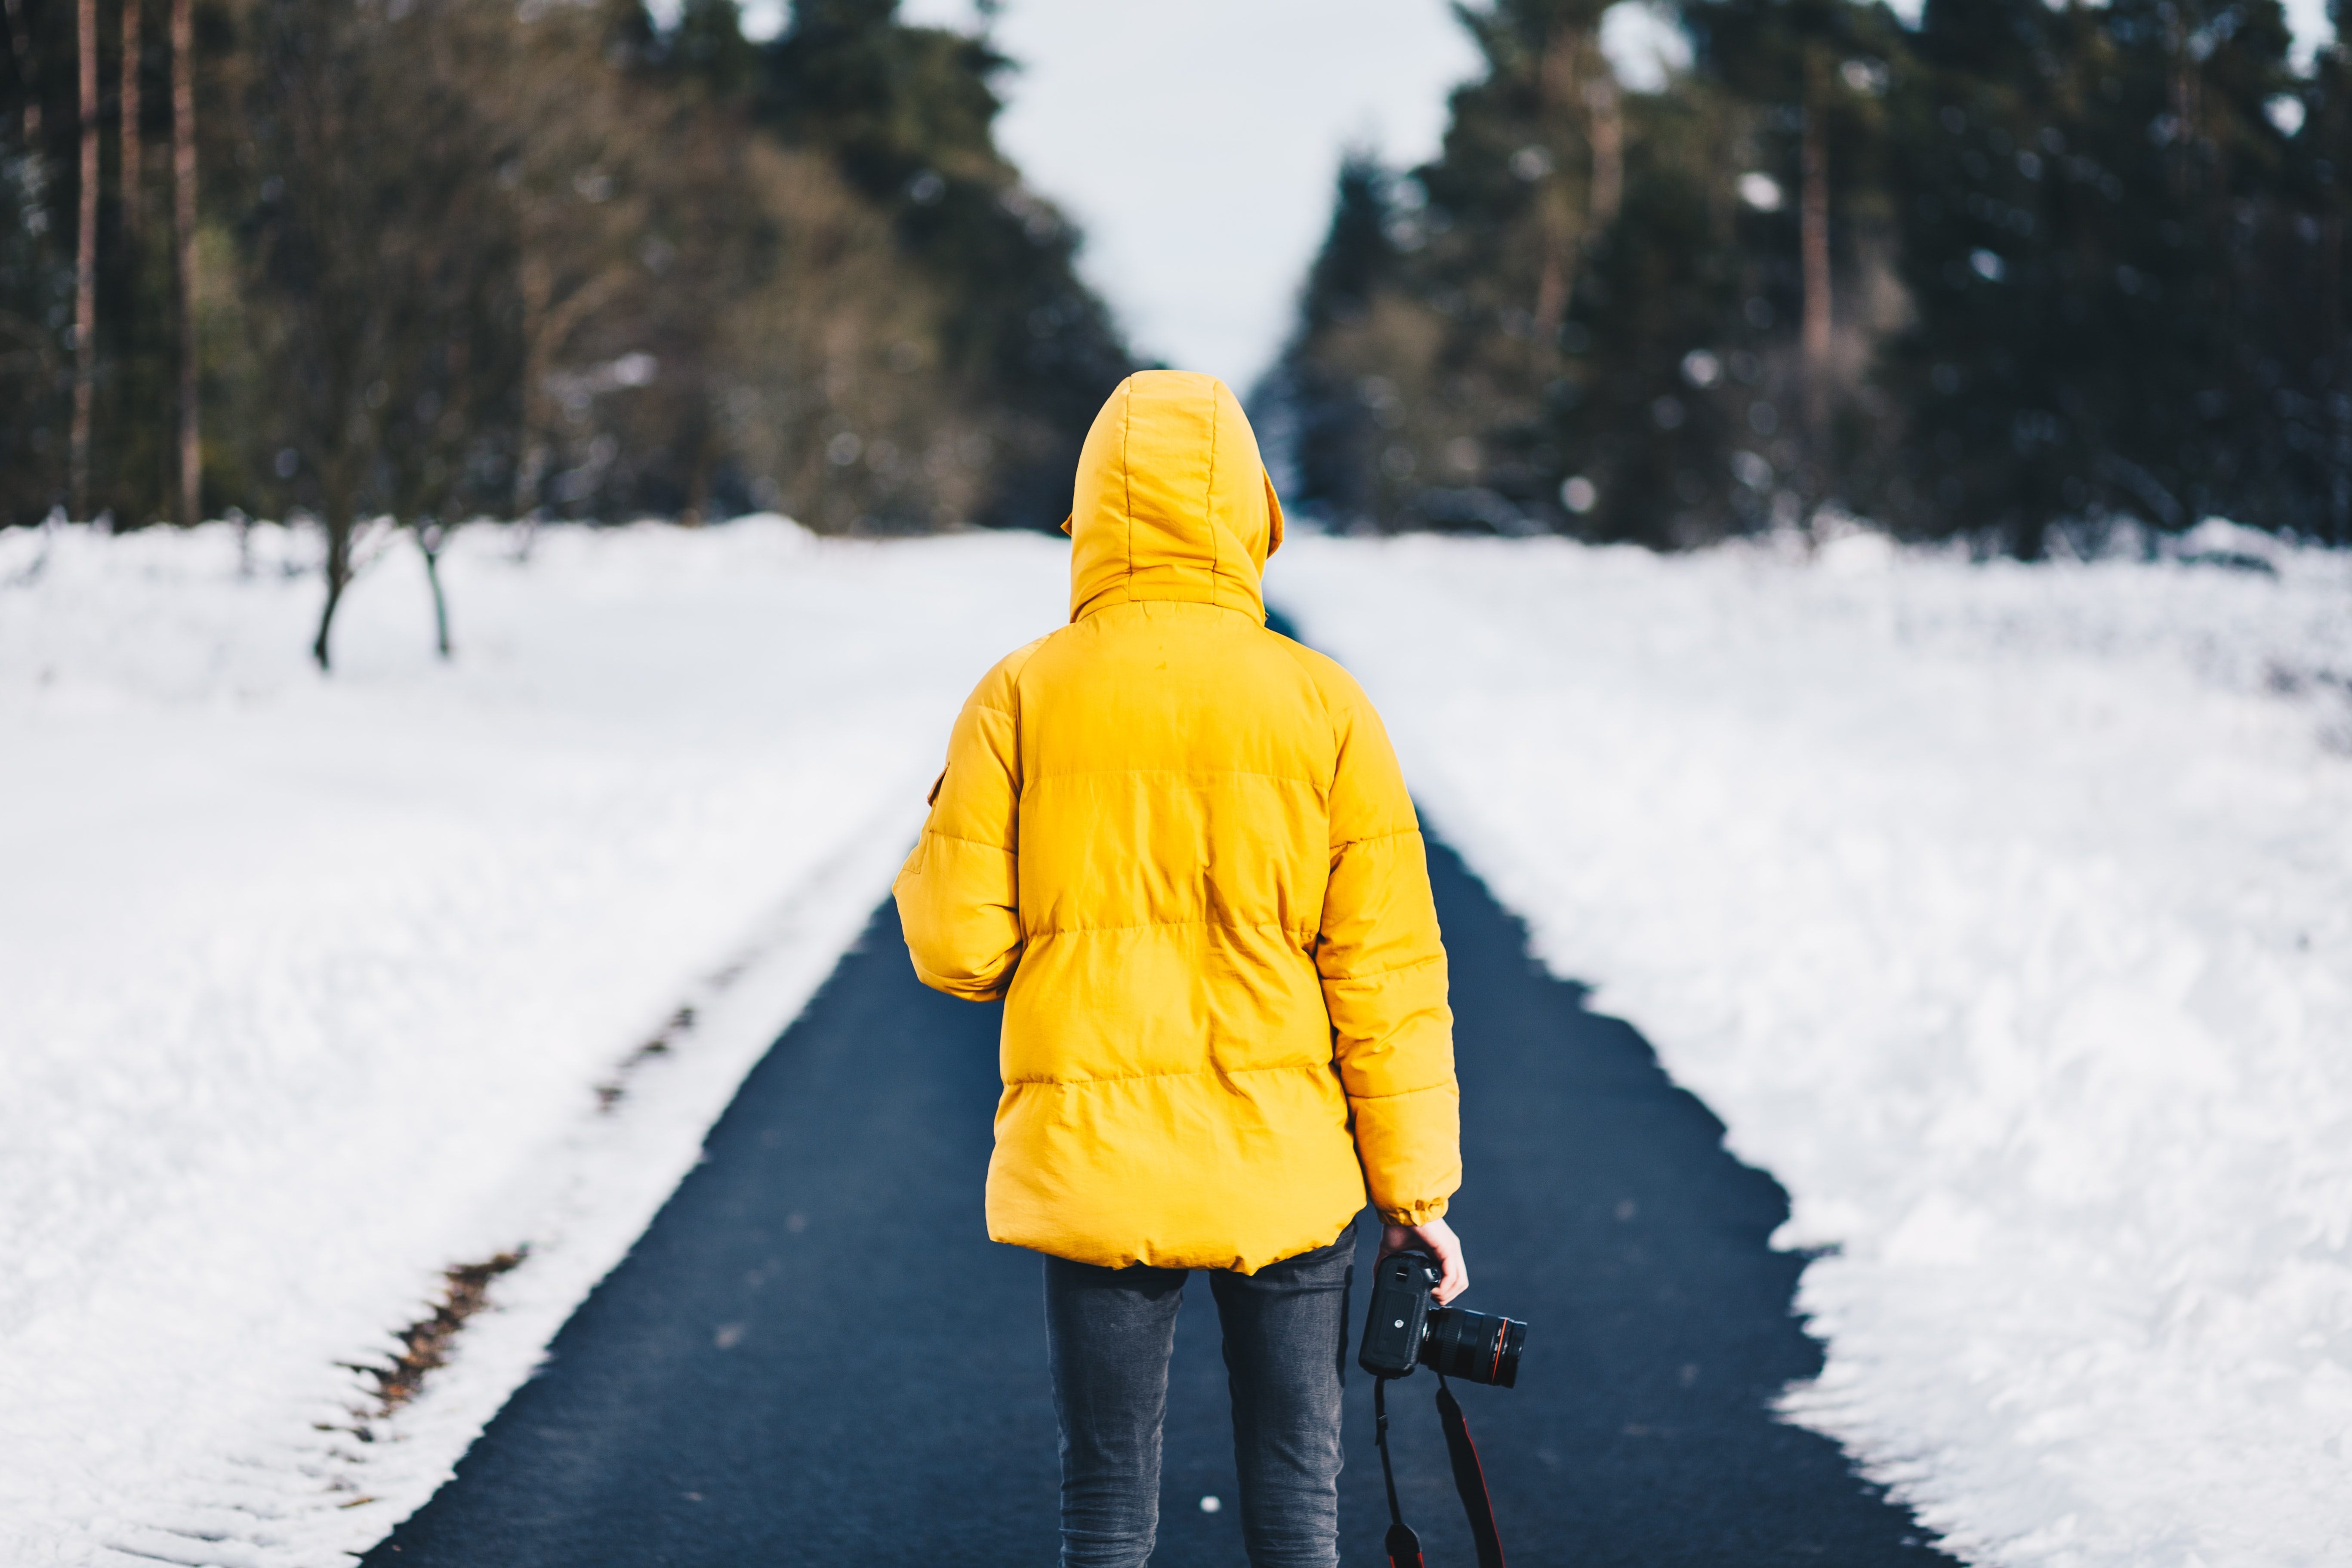 person on yellow jacket standing between snow floors